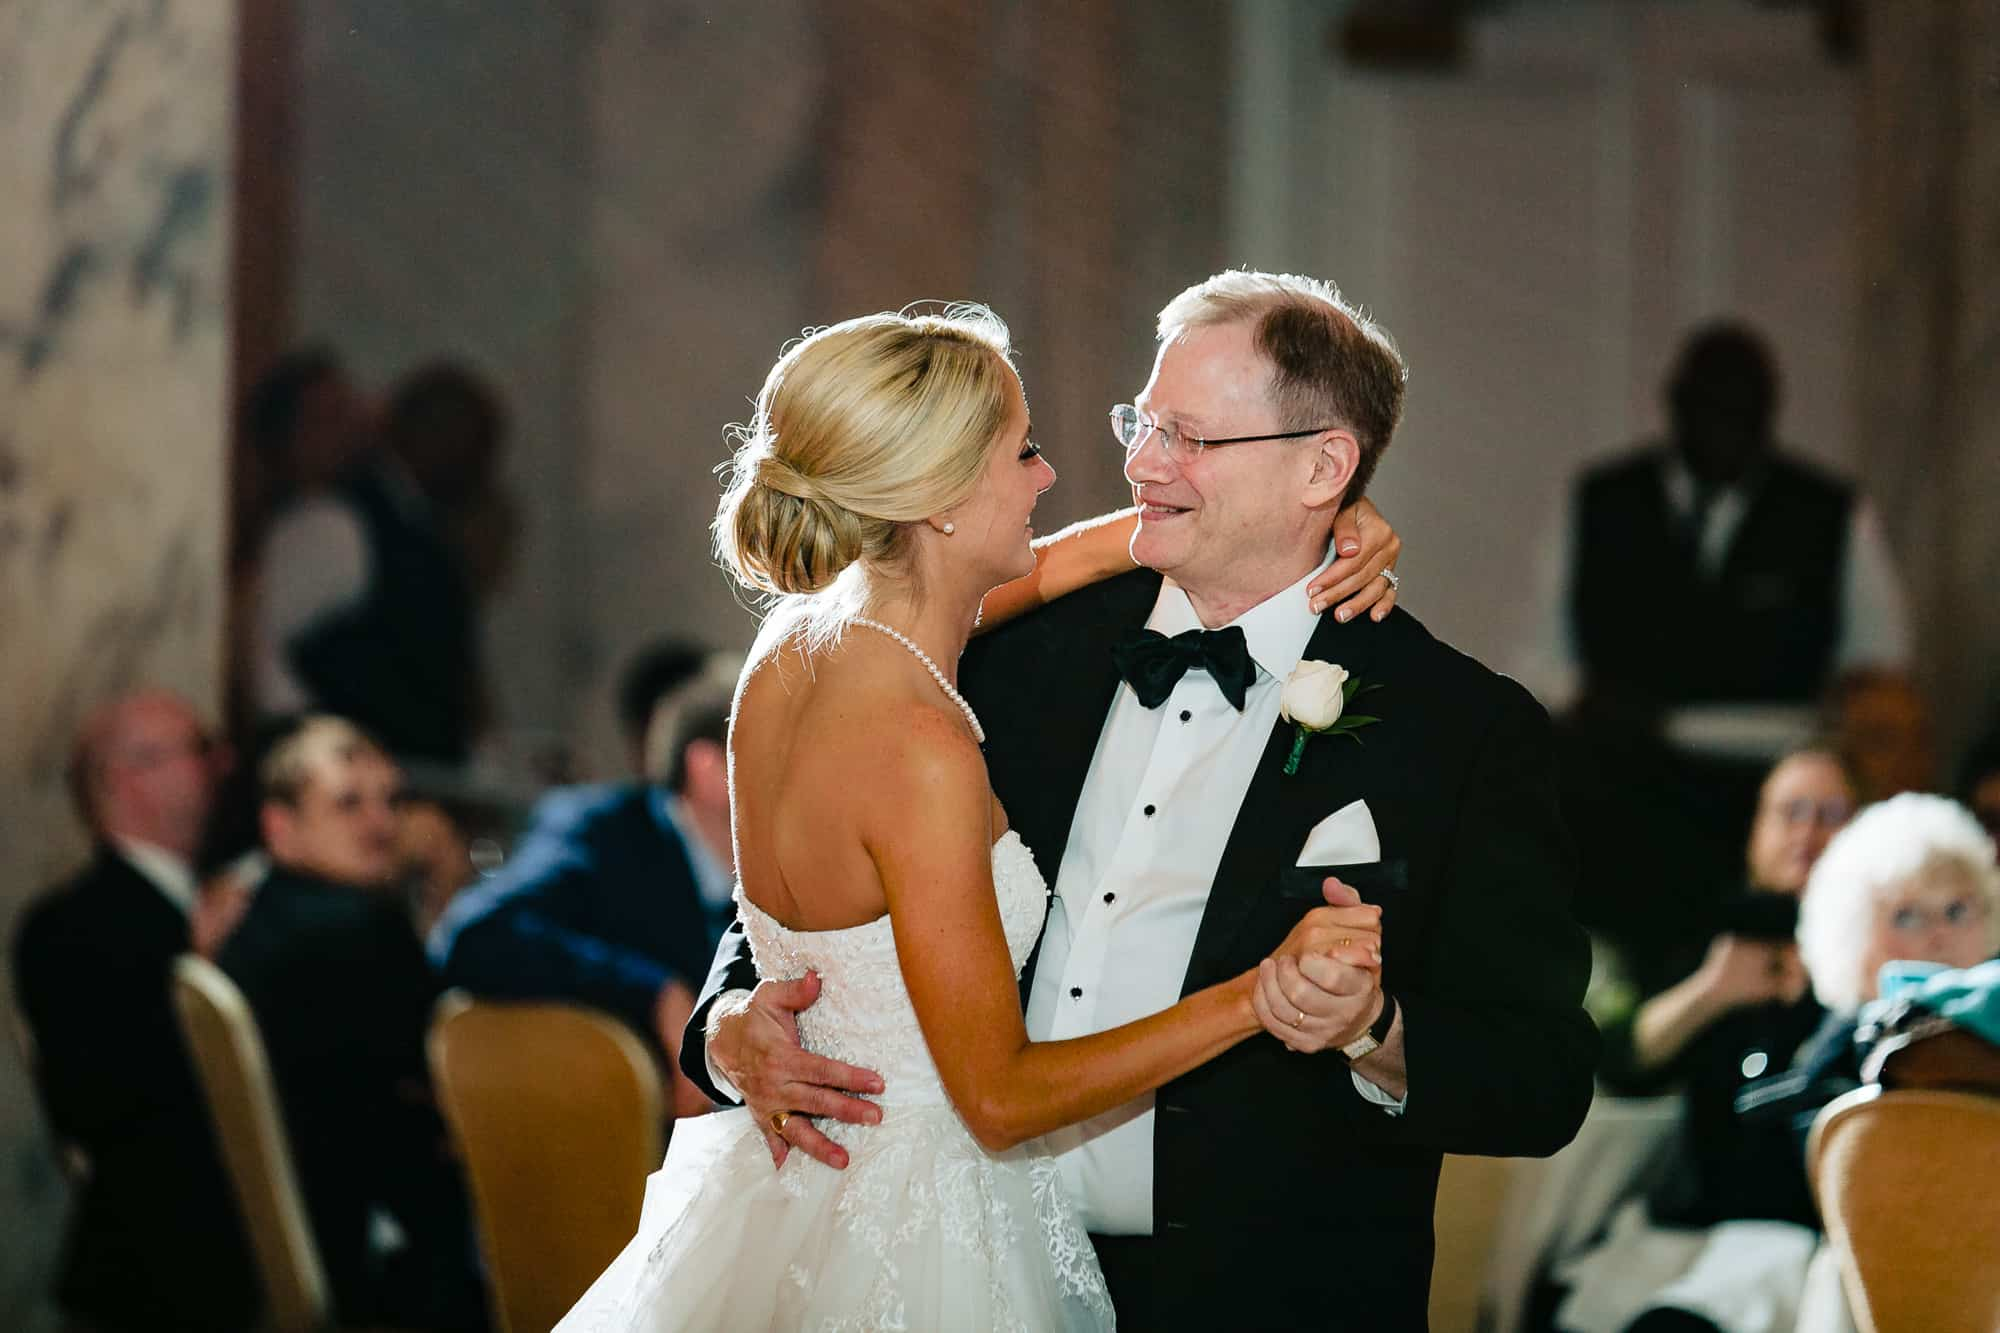 Bride and her father dancing at the Ritz Carlton Philadelphia